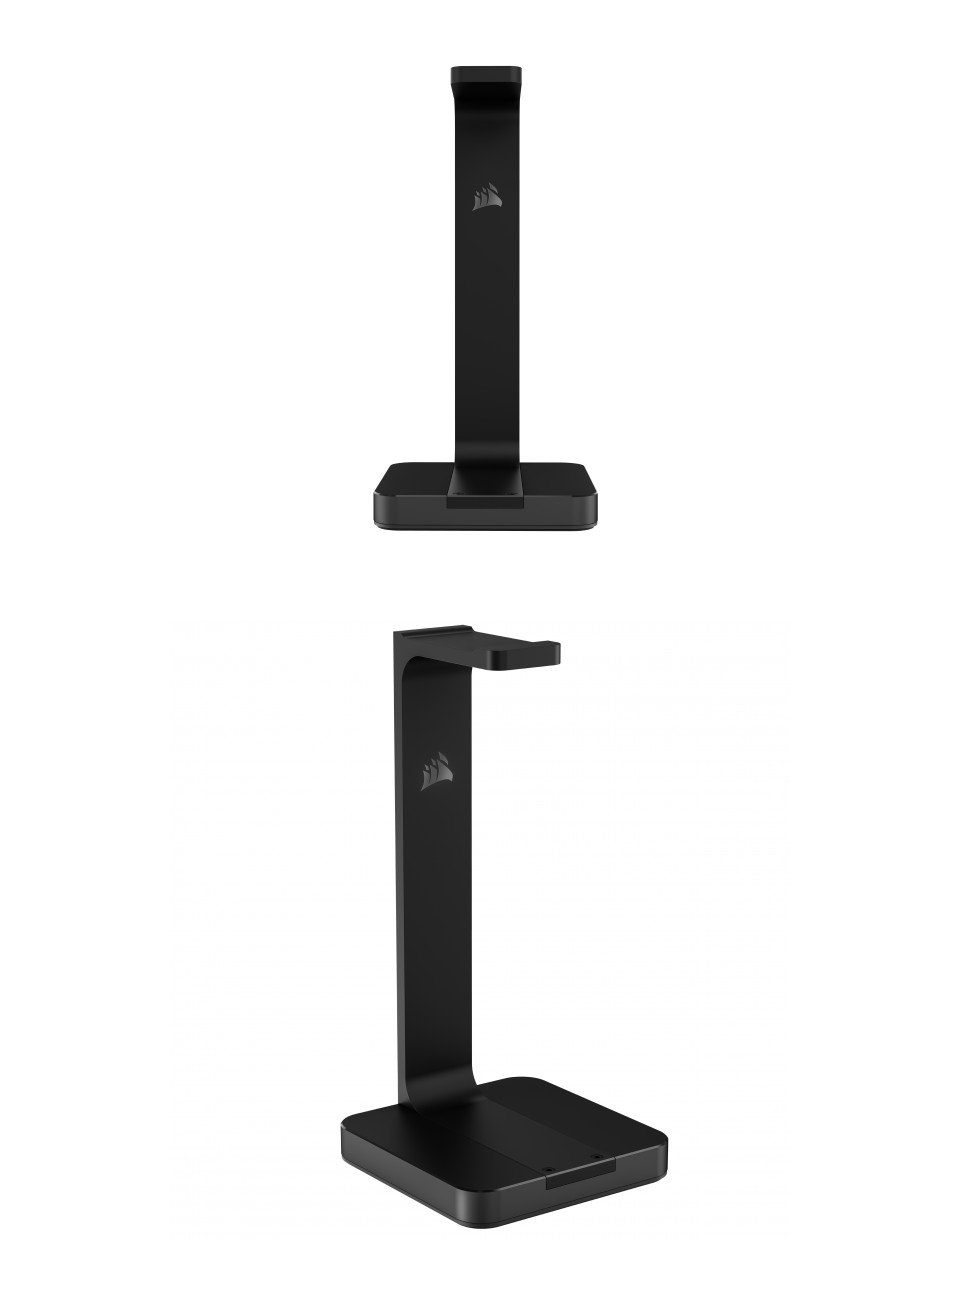 Corsair ST50 Premium Headset Stand product